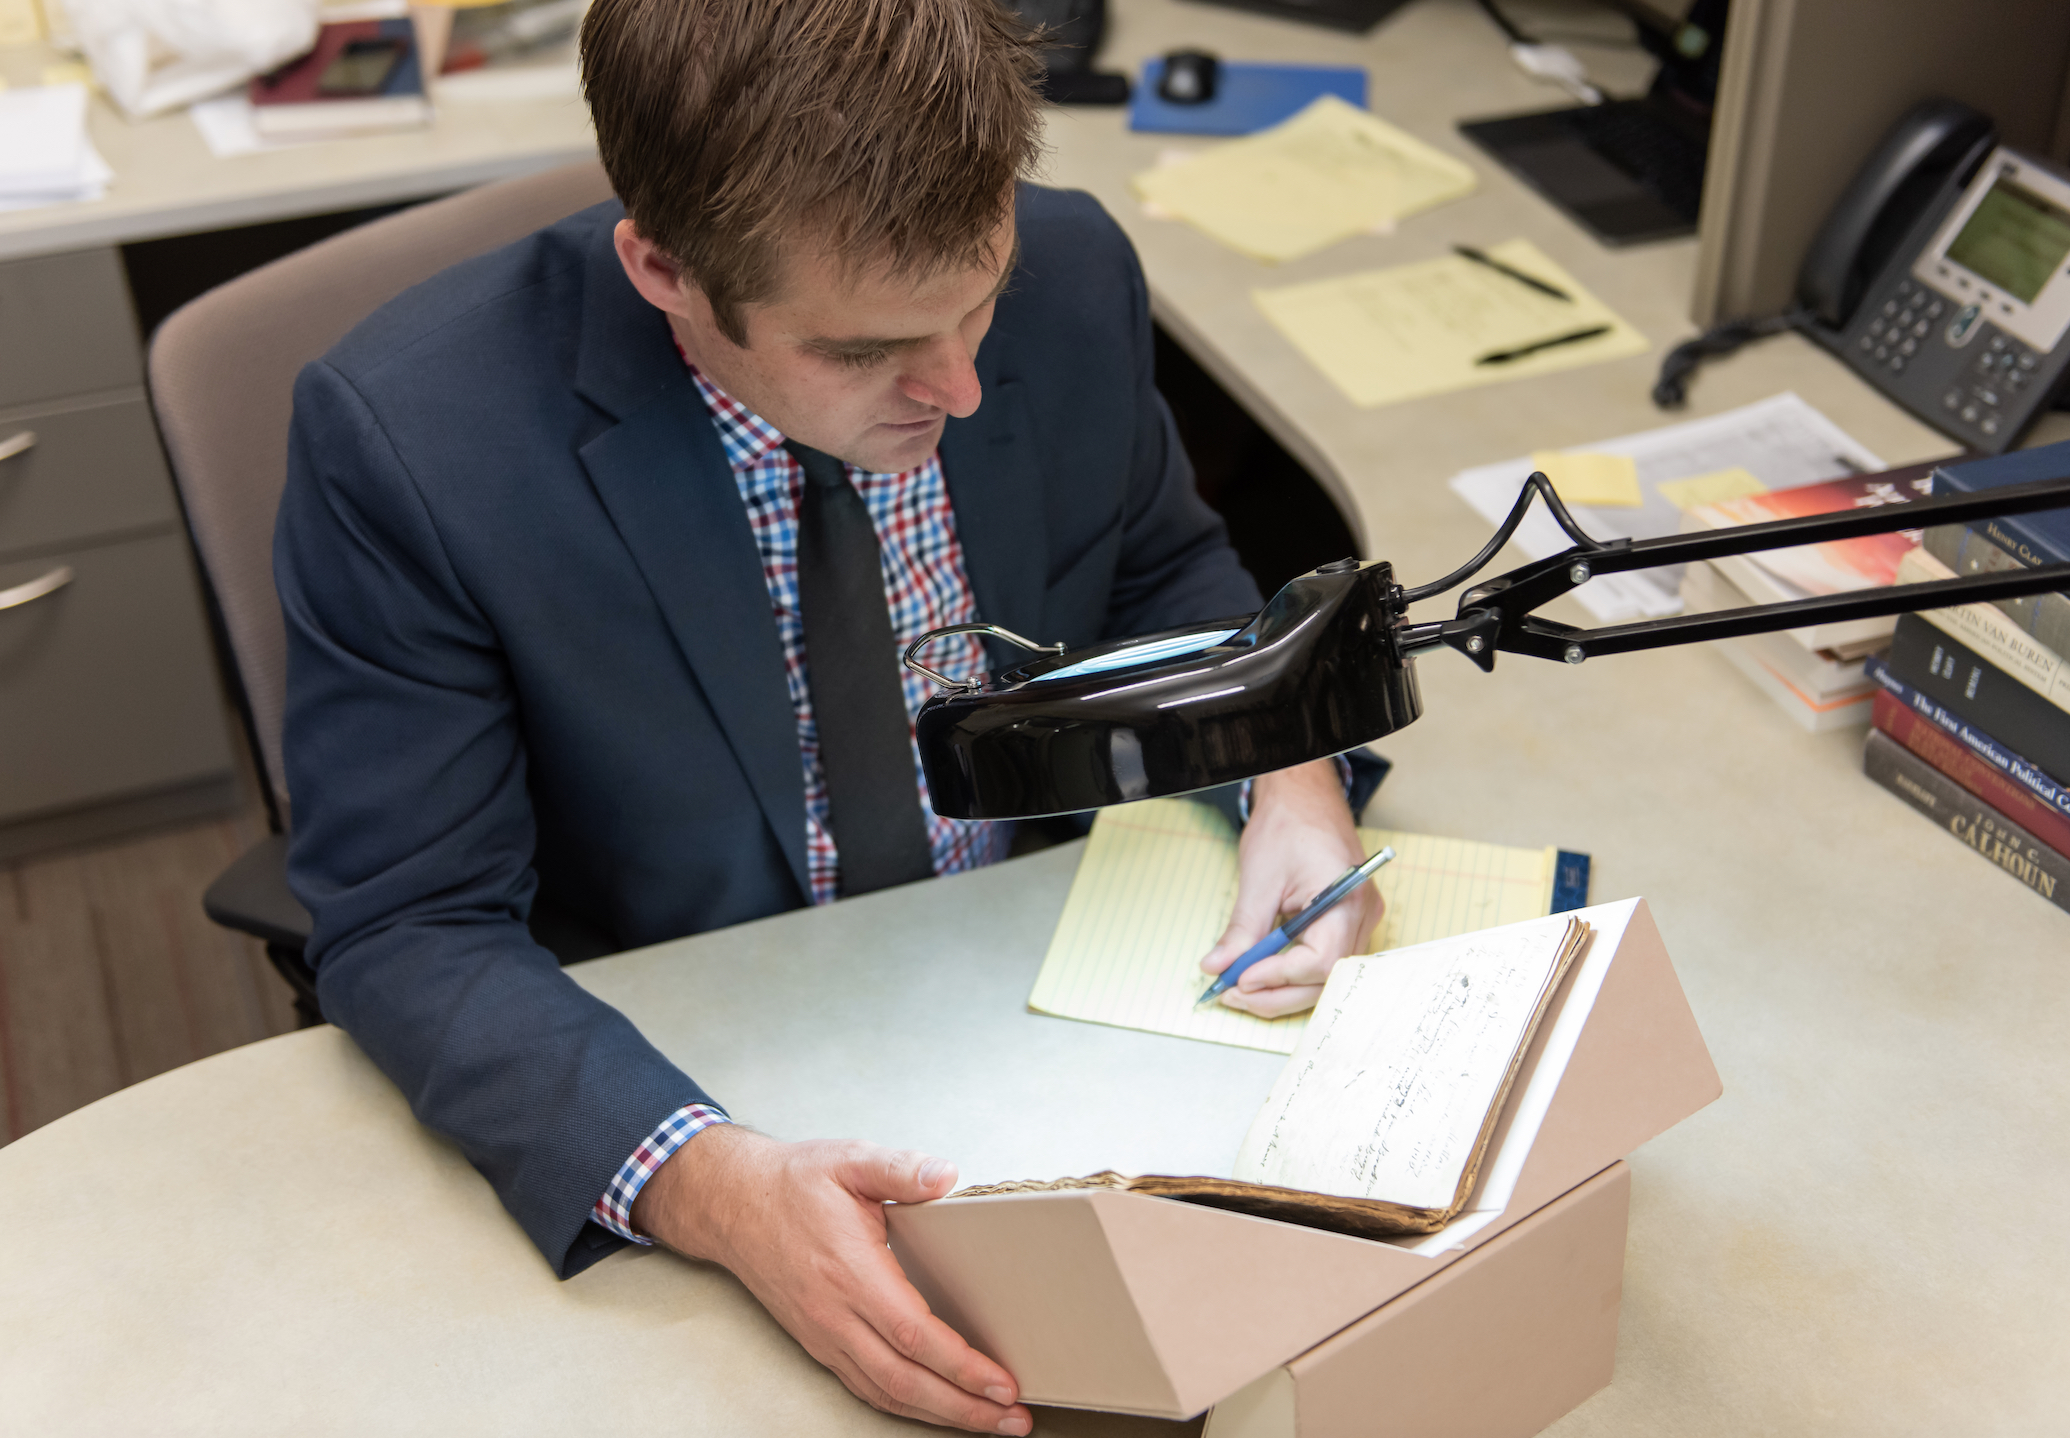 Historian Spencer W. McBride uses an illuminated magnifier to examine a journal from the early 1800s.